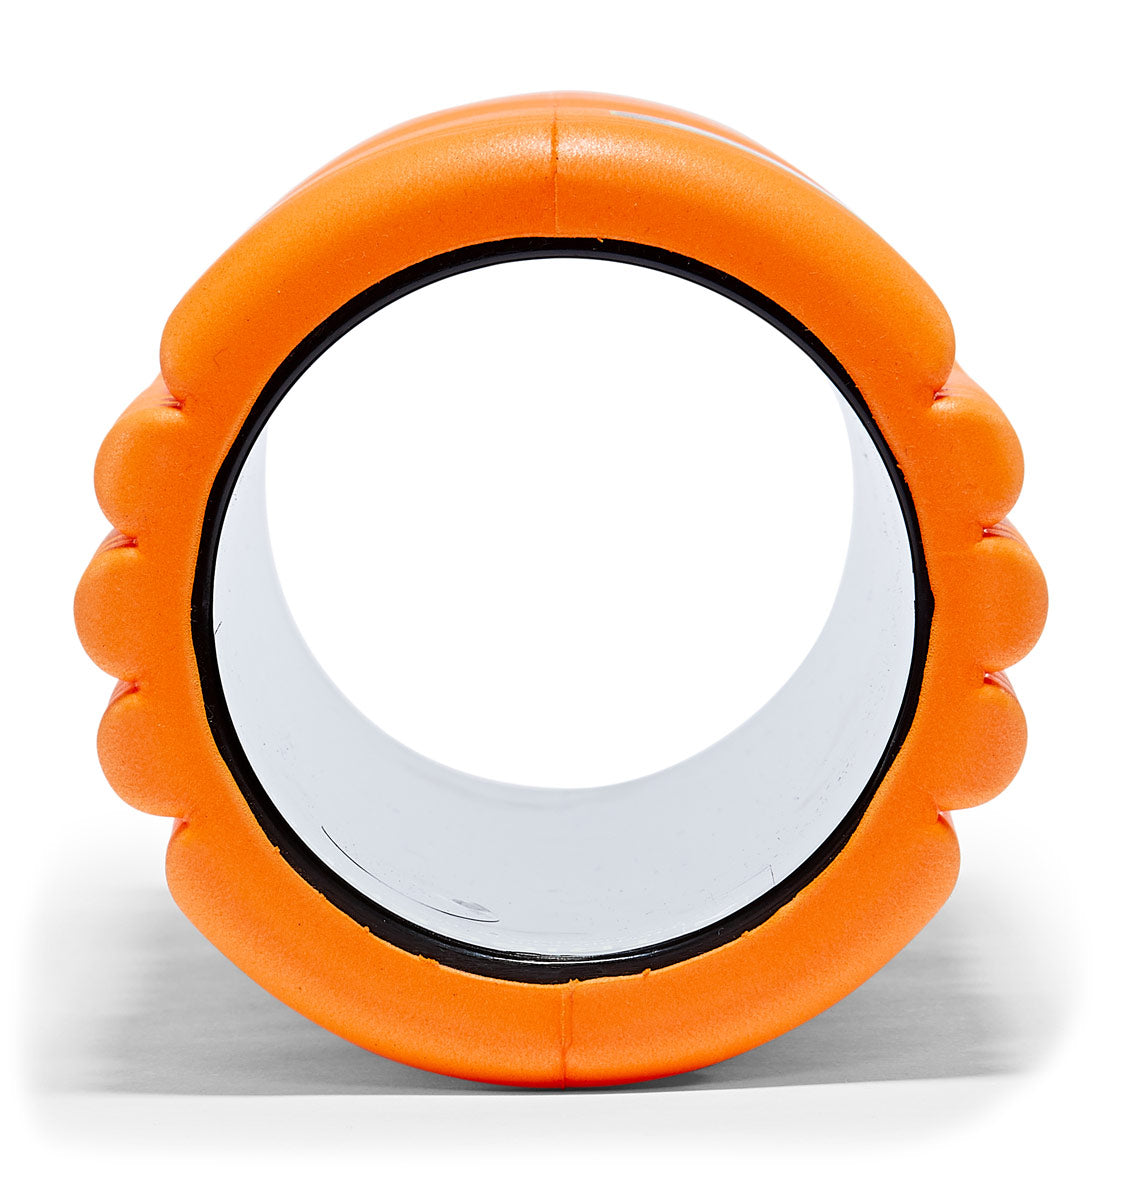 TPT3GRDOWS00000 TriggerPoint The Grid 1.0 Foam Roller Orange - Circle Face